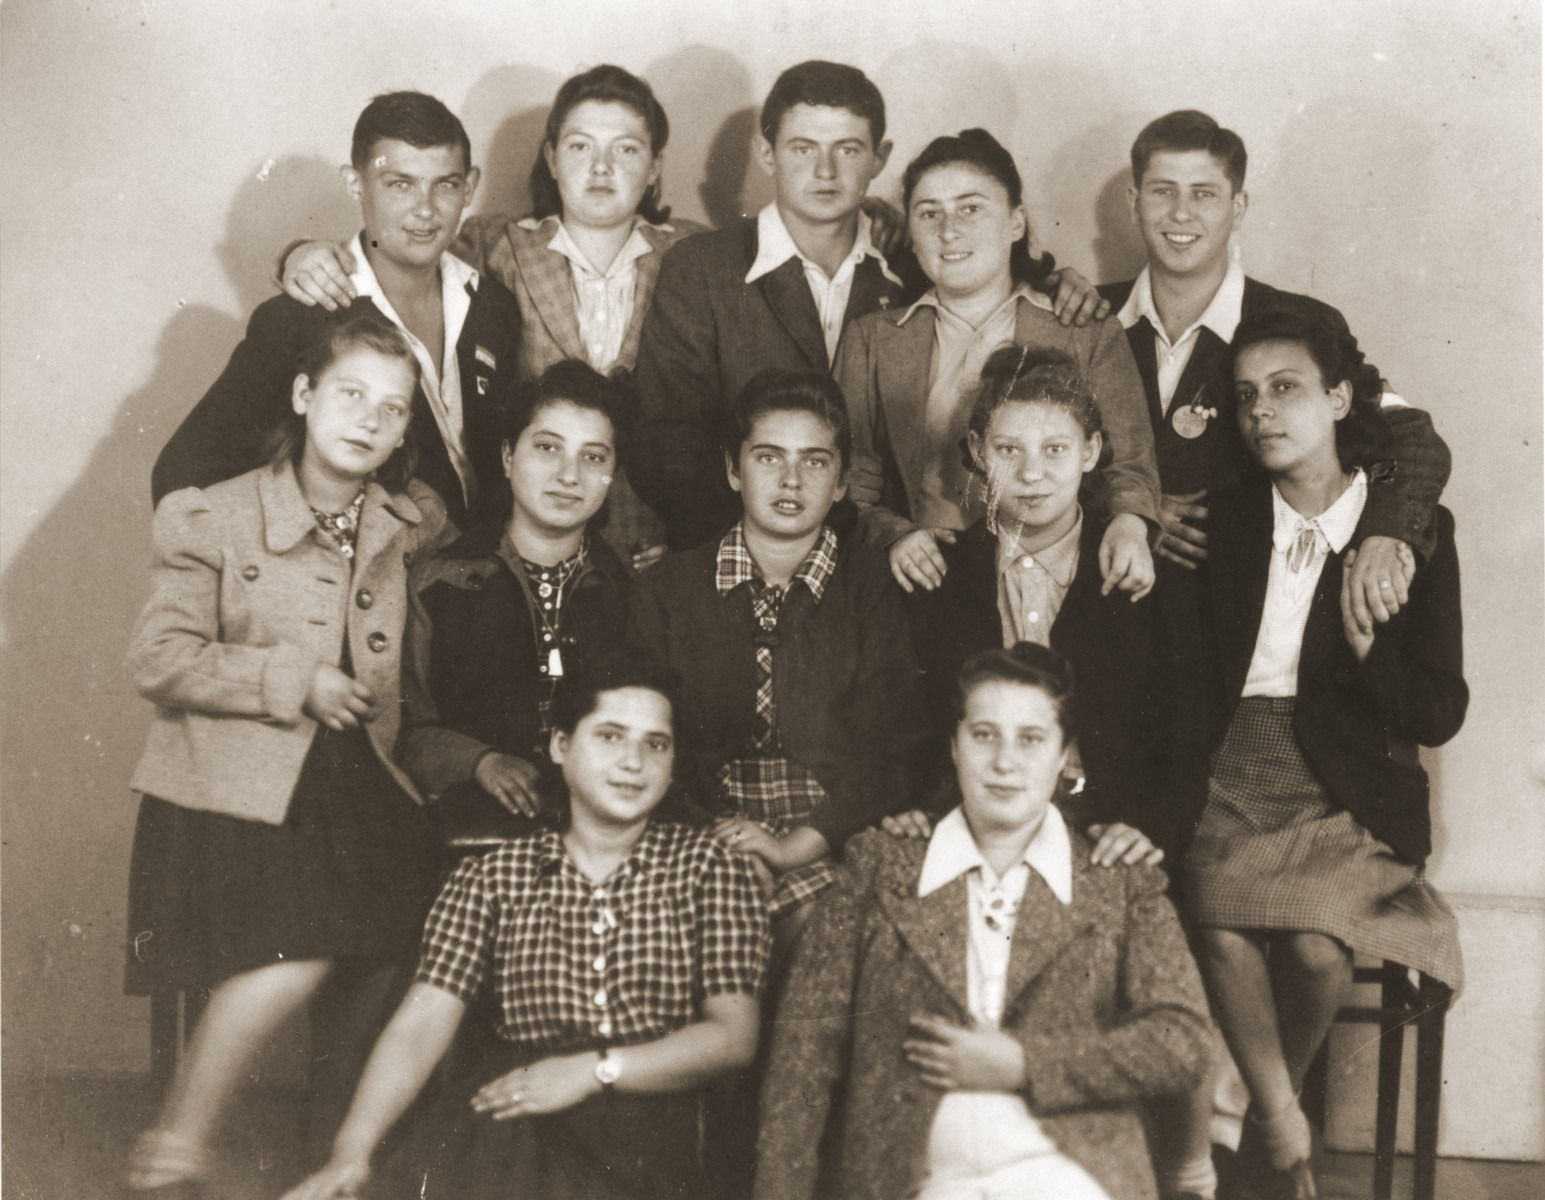 Group portrait of members of the orphans transport in Prague prior to their departure for England.  Among those pictured is Moniek Goldberg (top row, center).